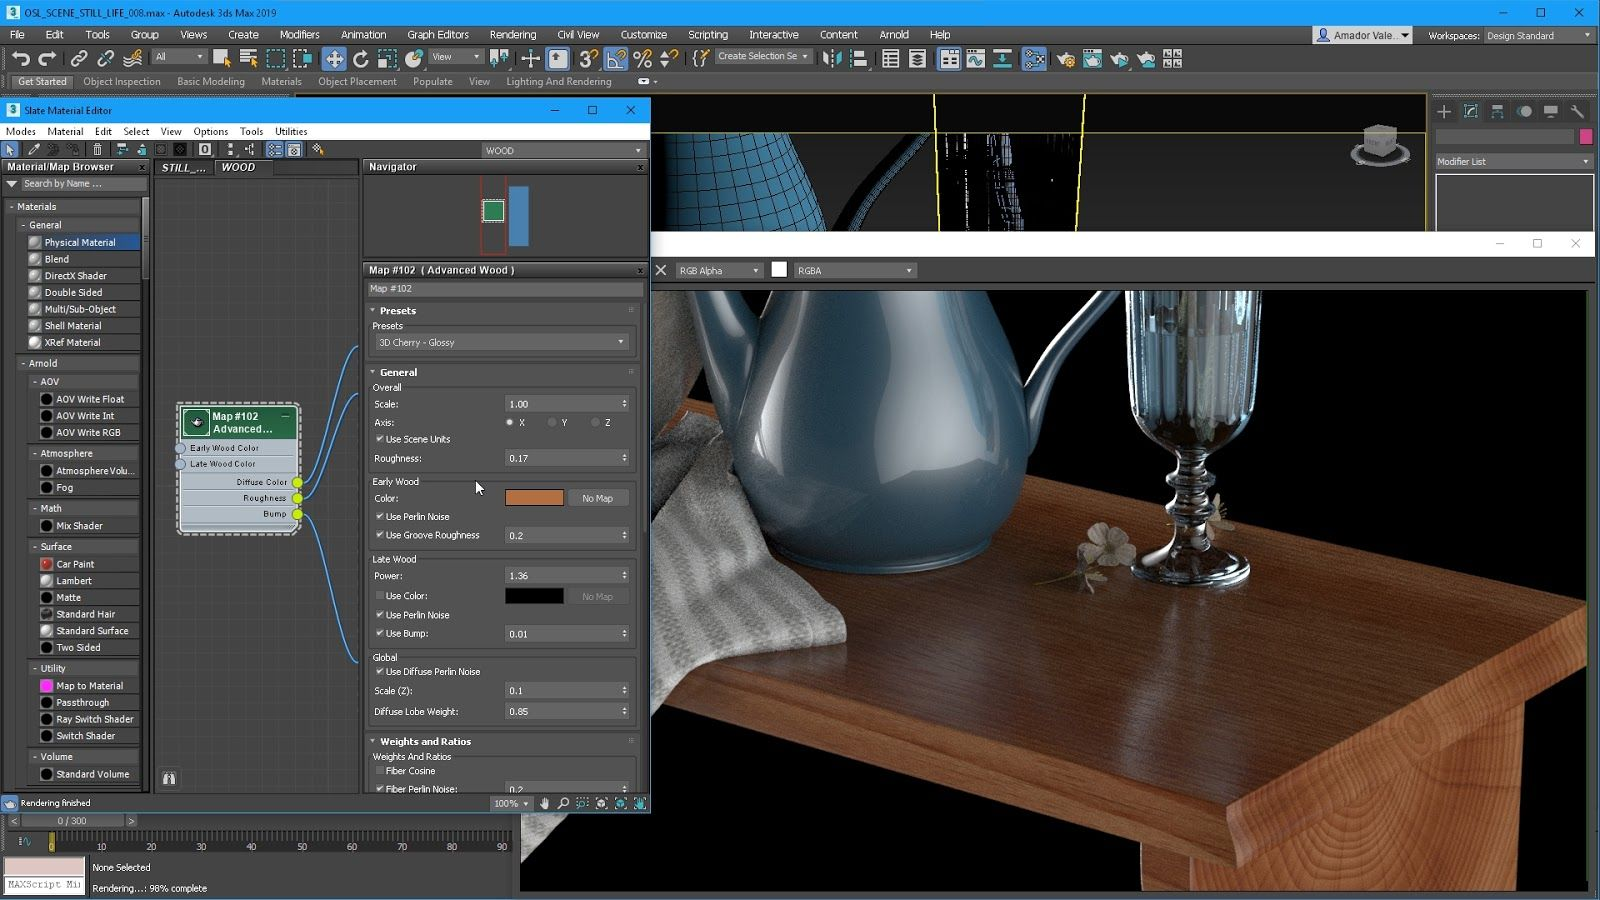 3ds Max 2019 Wood map - الجديد في أتوديسك ماكس 2019 - What's New in 3ds Max 2019